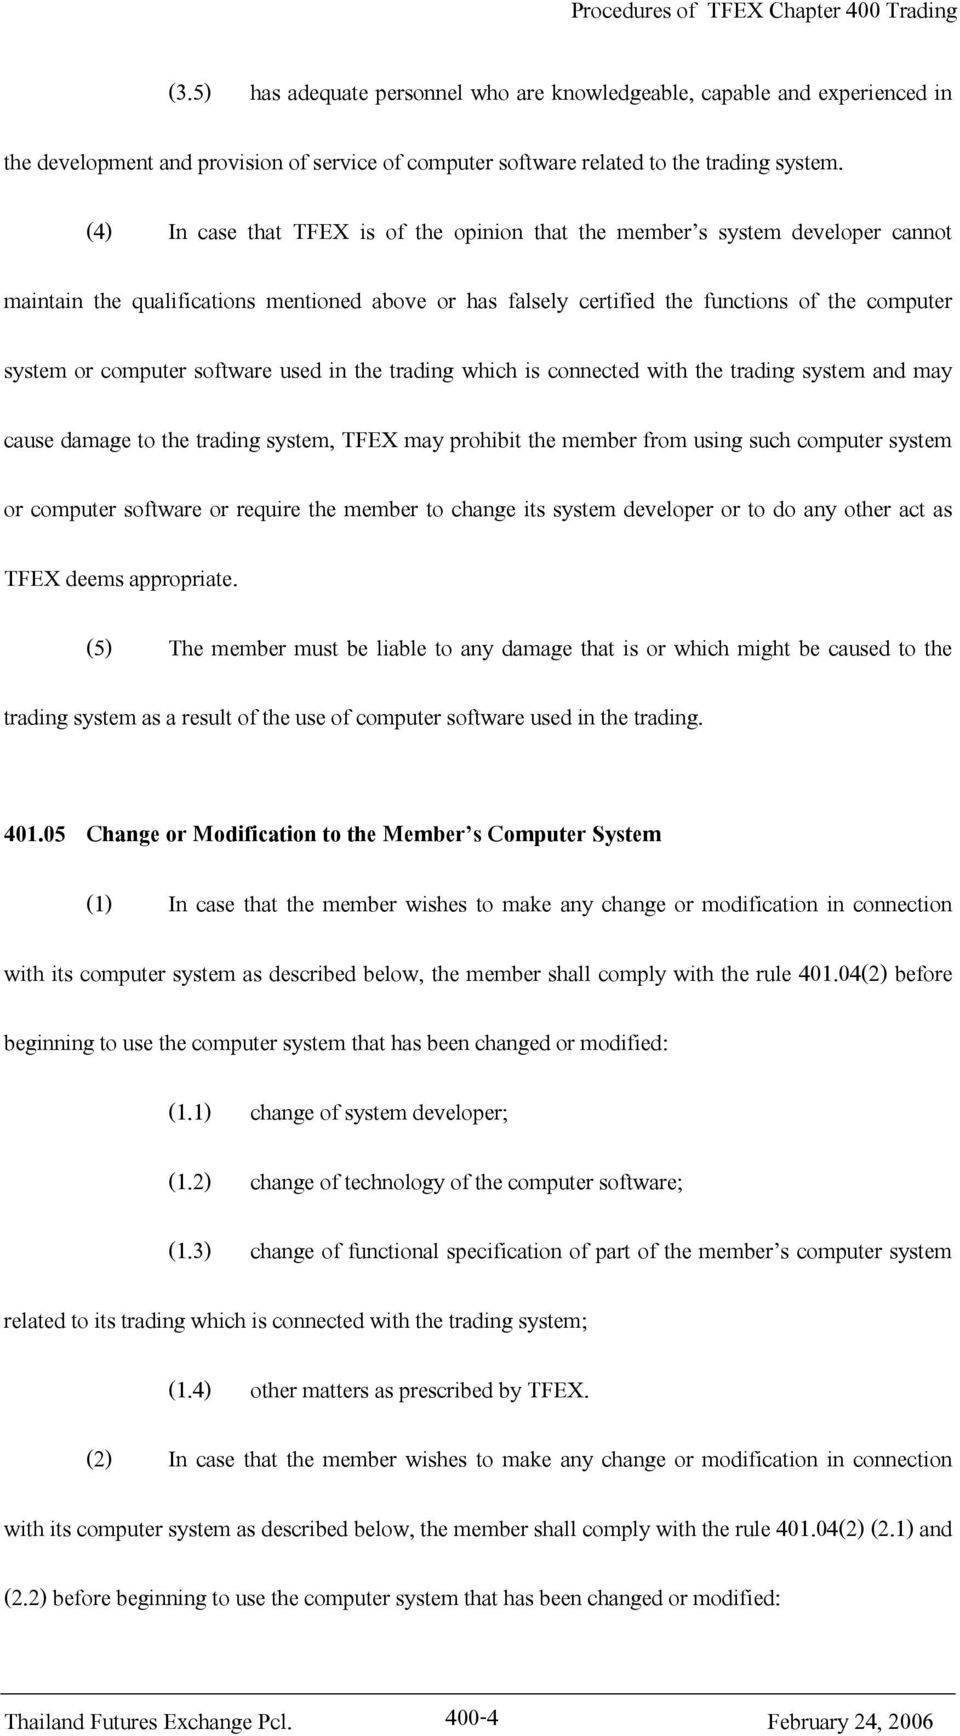 software used in the trading which is connected with the trading system and may cause damage to the trading system, TFEX may prohibit the member from using such computer system or computer software